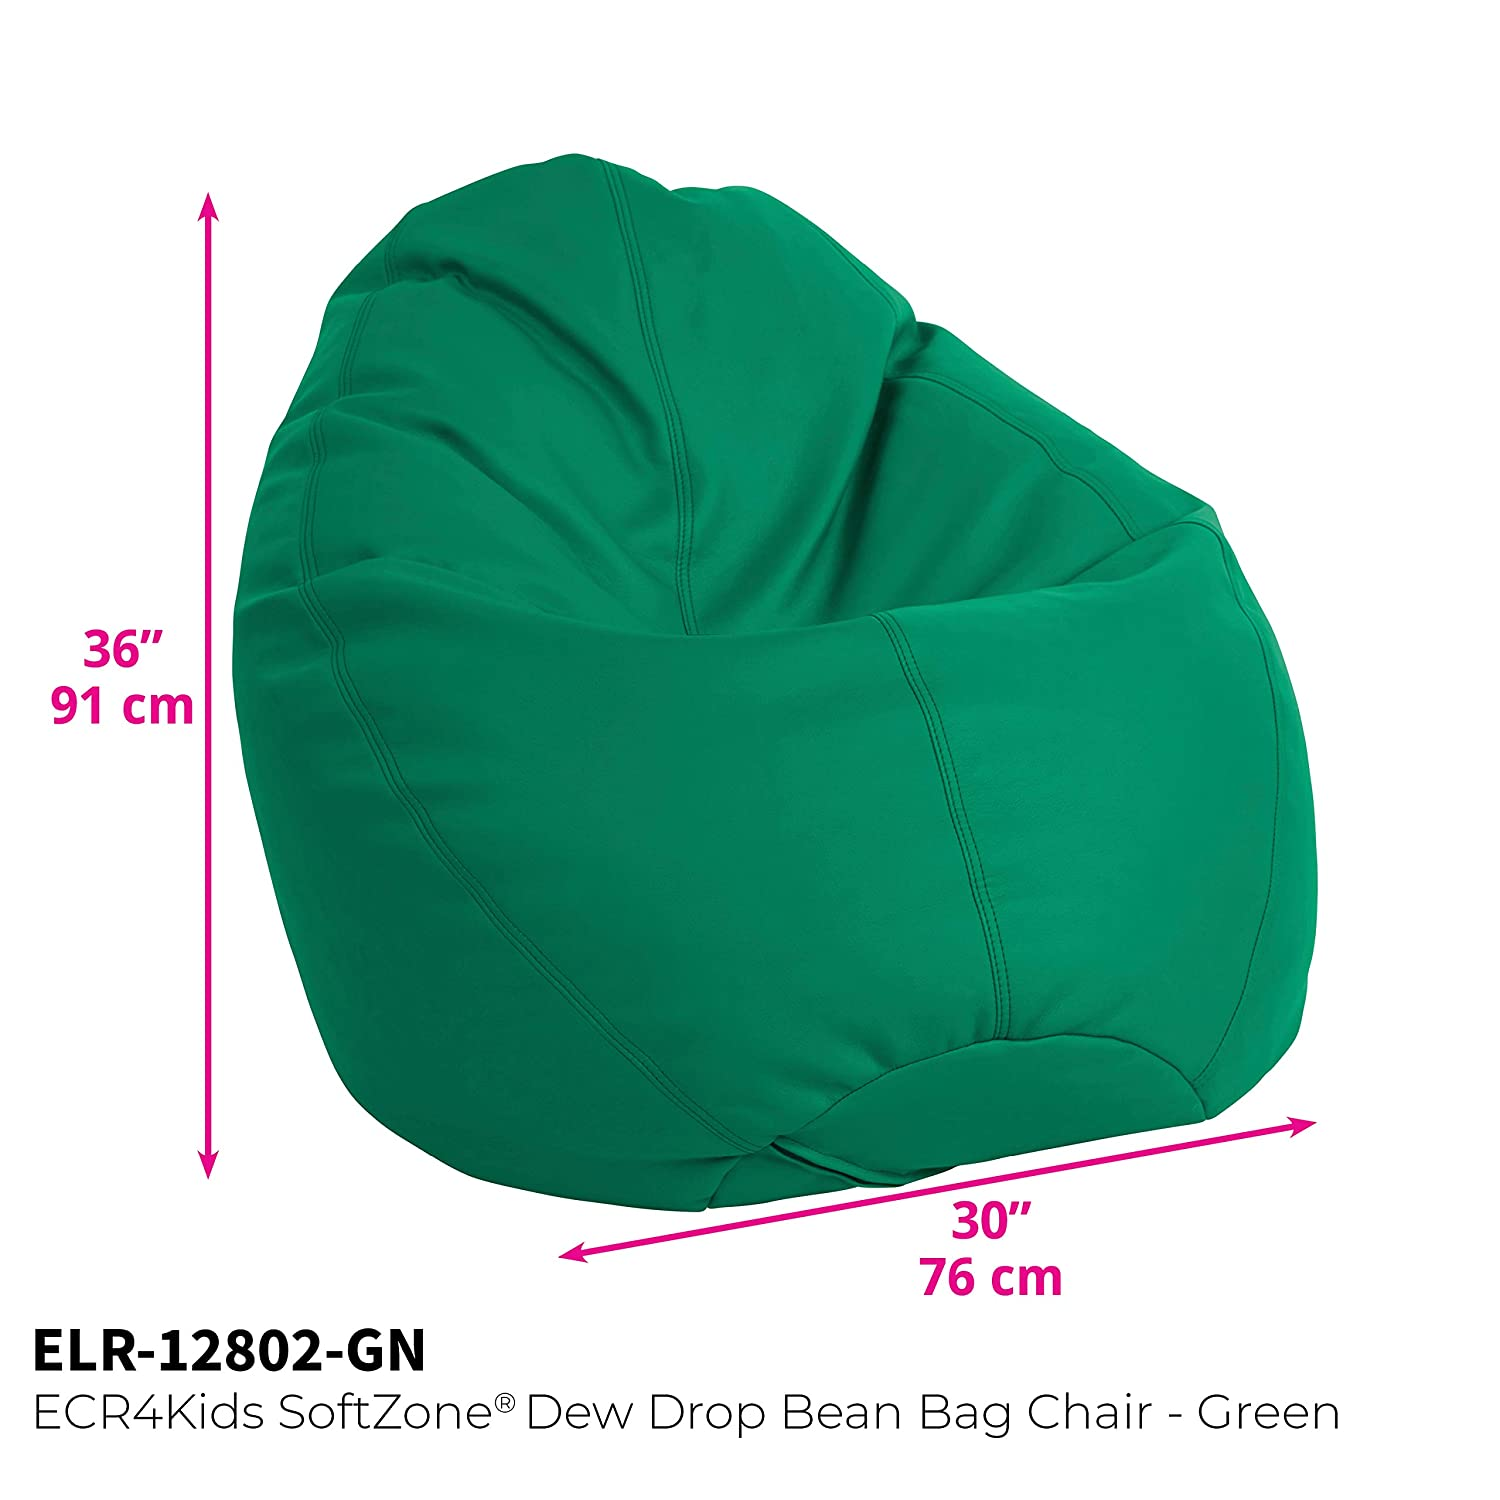 Remarkable Ecr4Kids Dew Drop Bean Bag Chair Green Andrewgaddart Wooden Chair Designs For Living Room Andrewgaddartcom